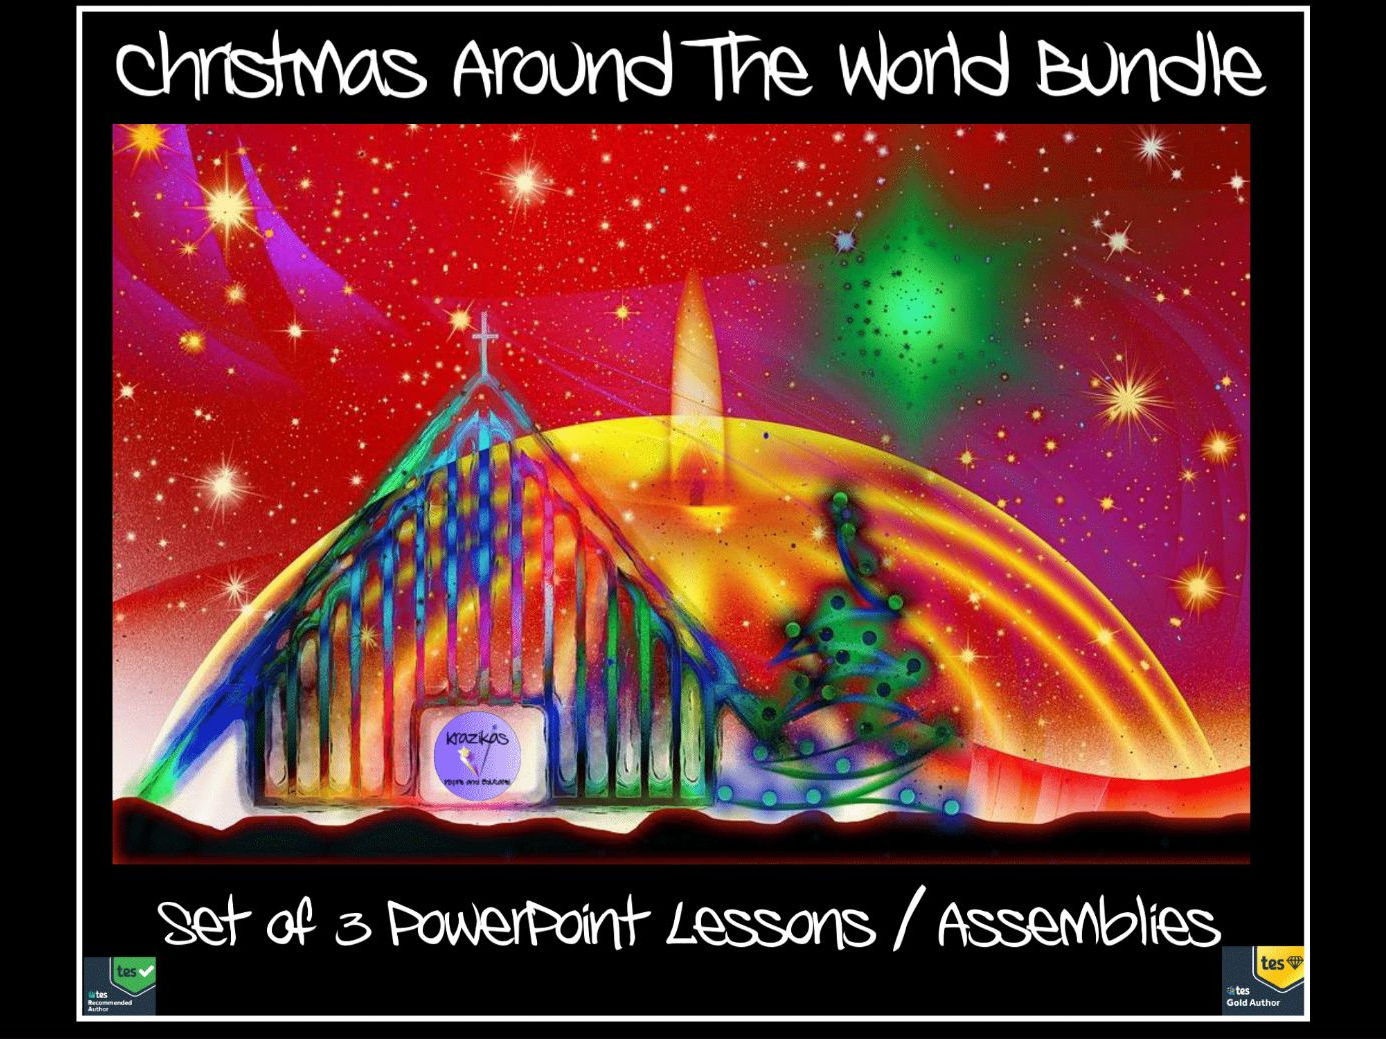 Christmas Around The World Bundle - Three PowerPoint Lesson / Assembly Presentations